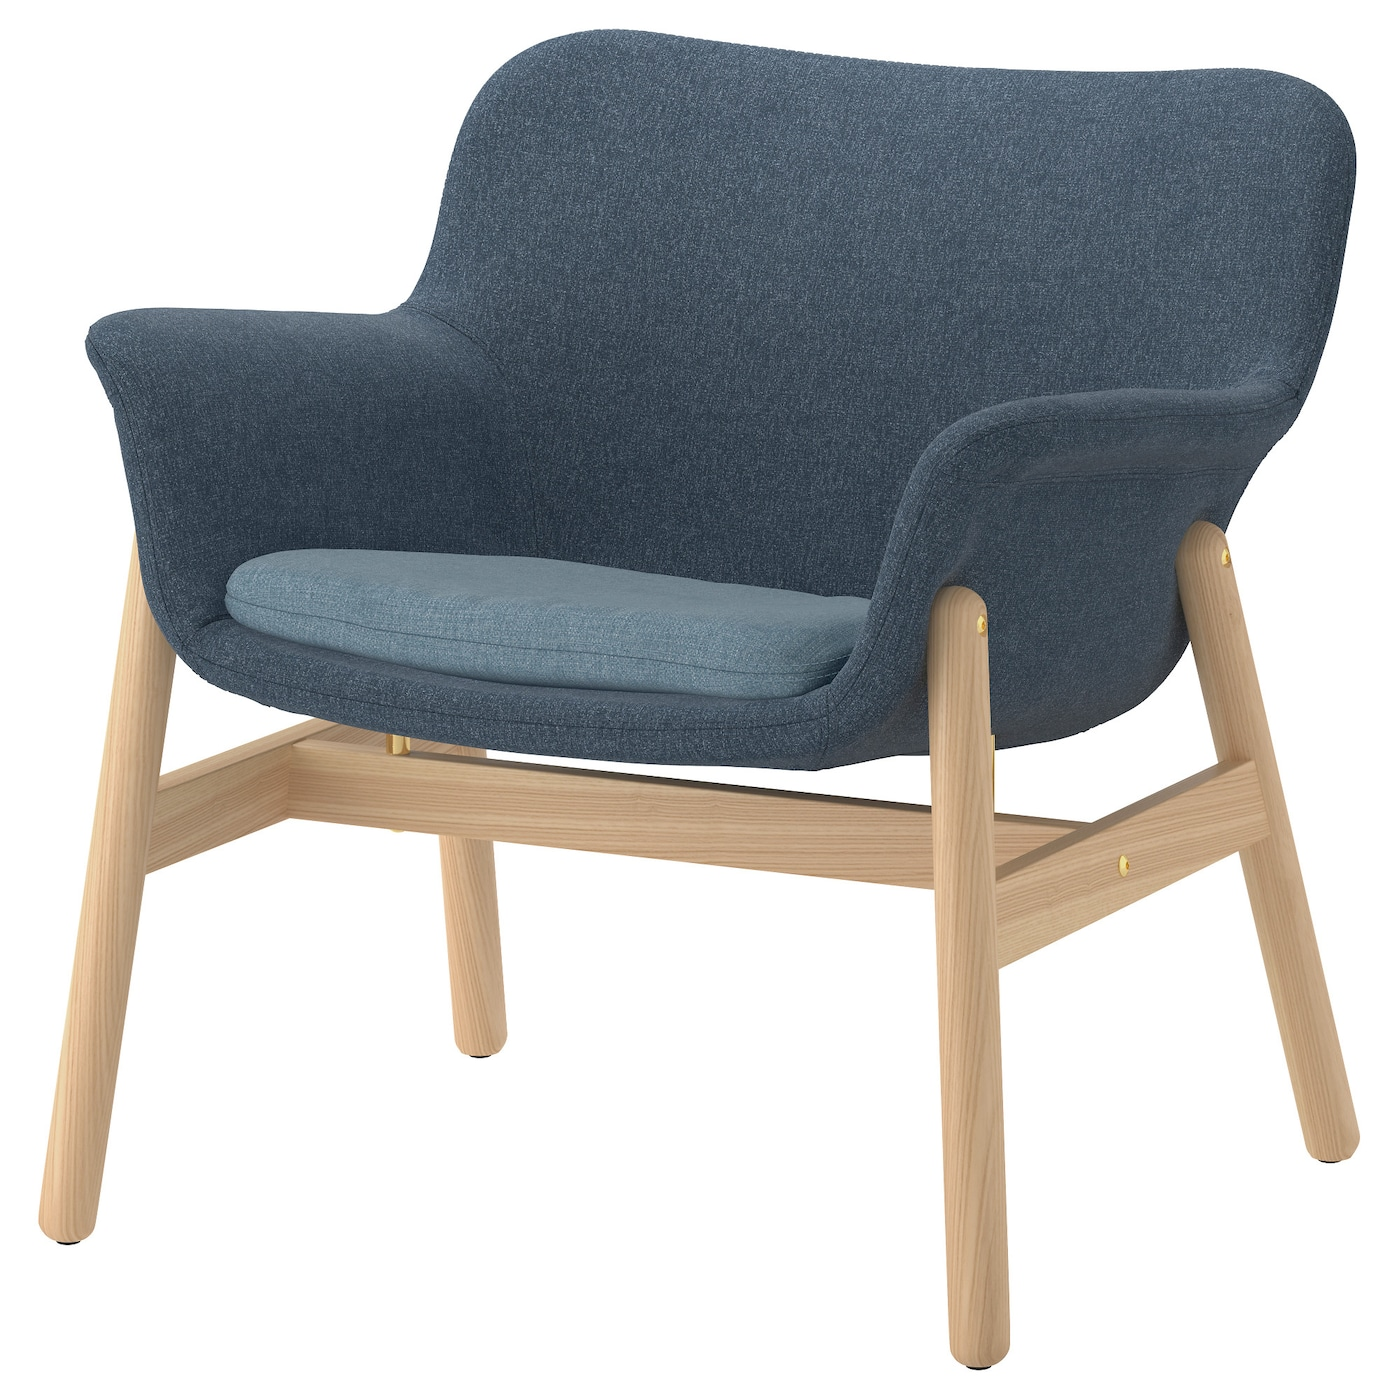 Ikea Vedbo Armchair 10 Year Guarantee Read About The Terms In Brochure